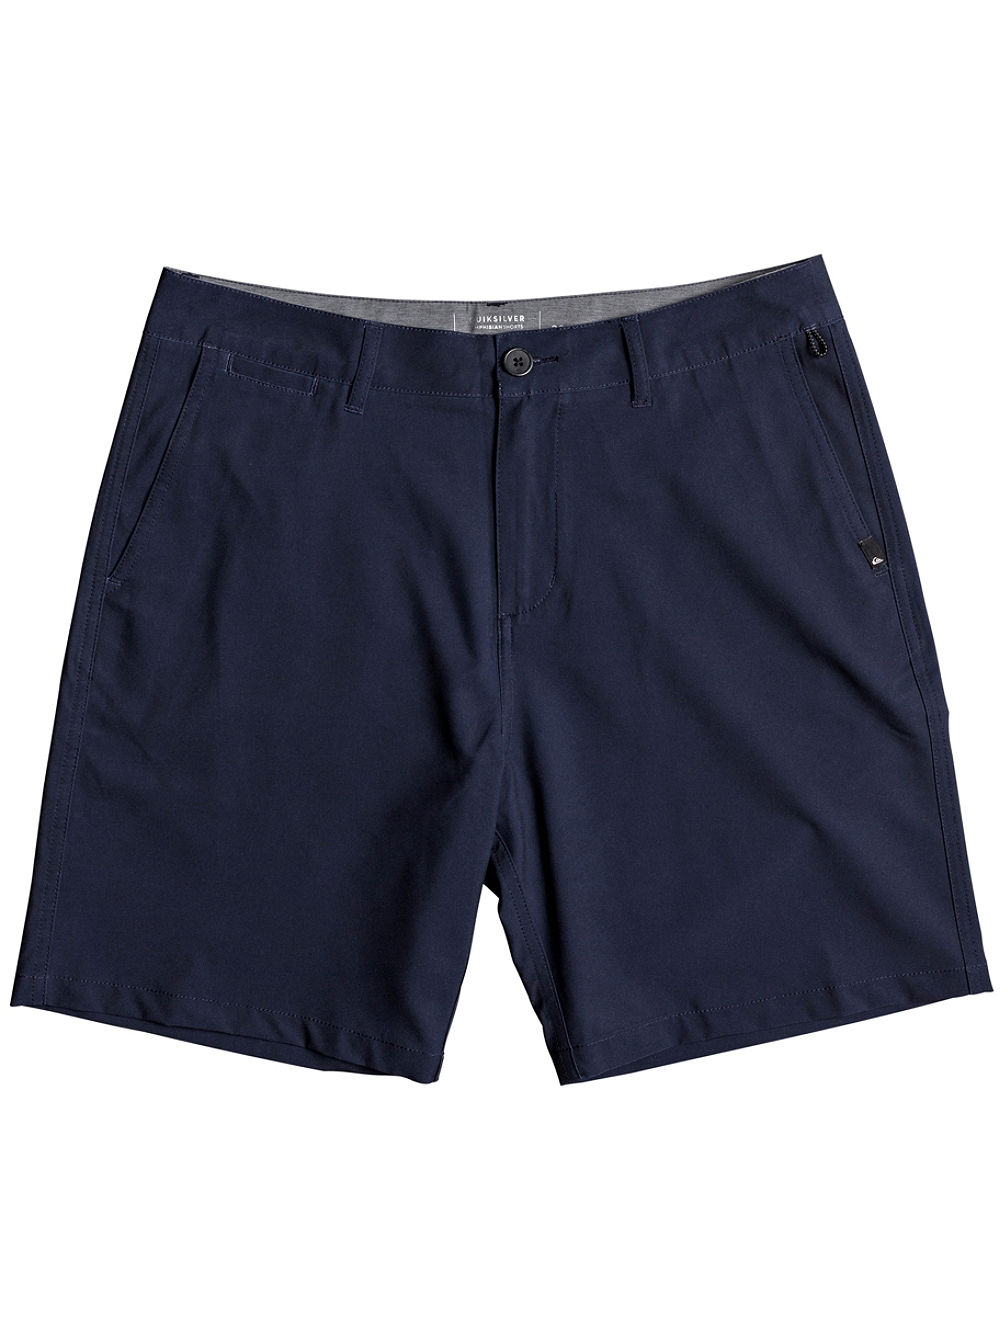 "Union Amphibian 19"" Boardshorts"